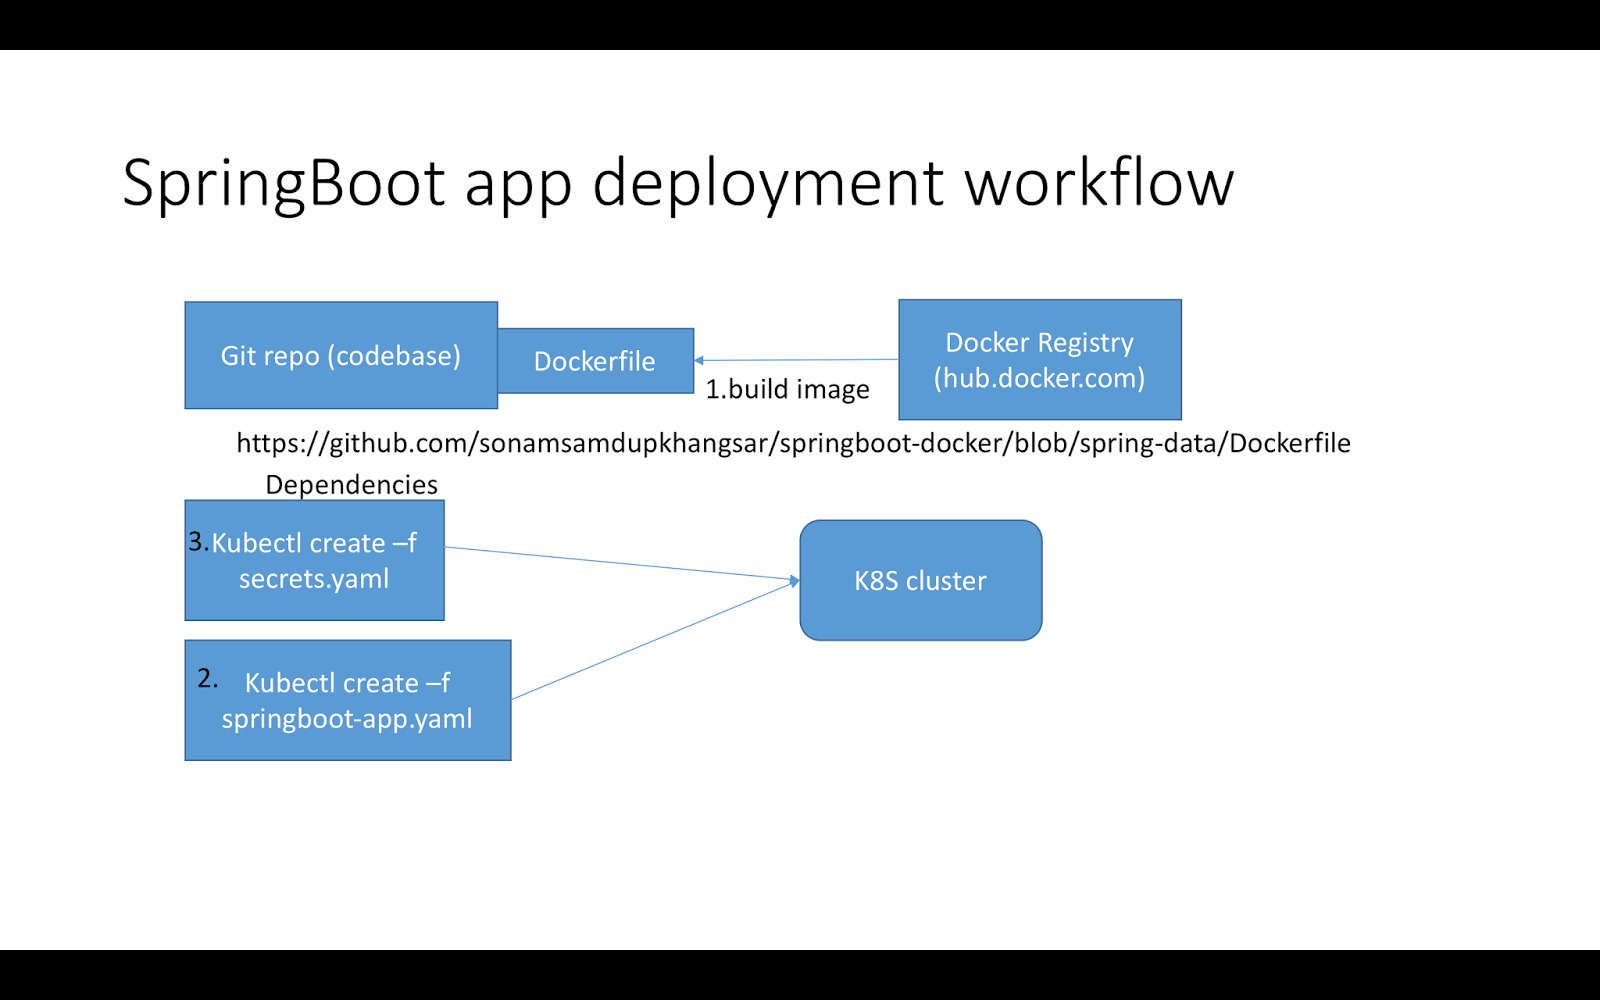 SpringBoot app building and deployment on Kubernetes cluster